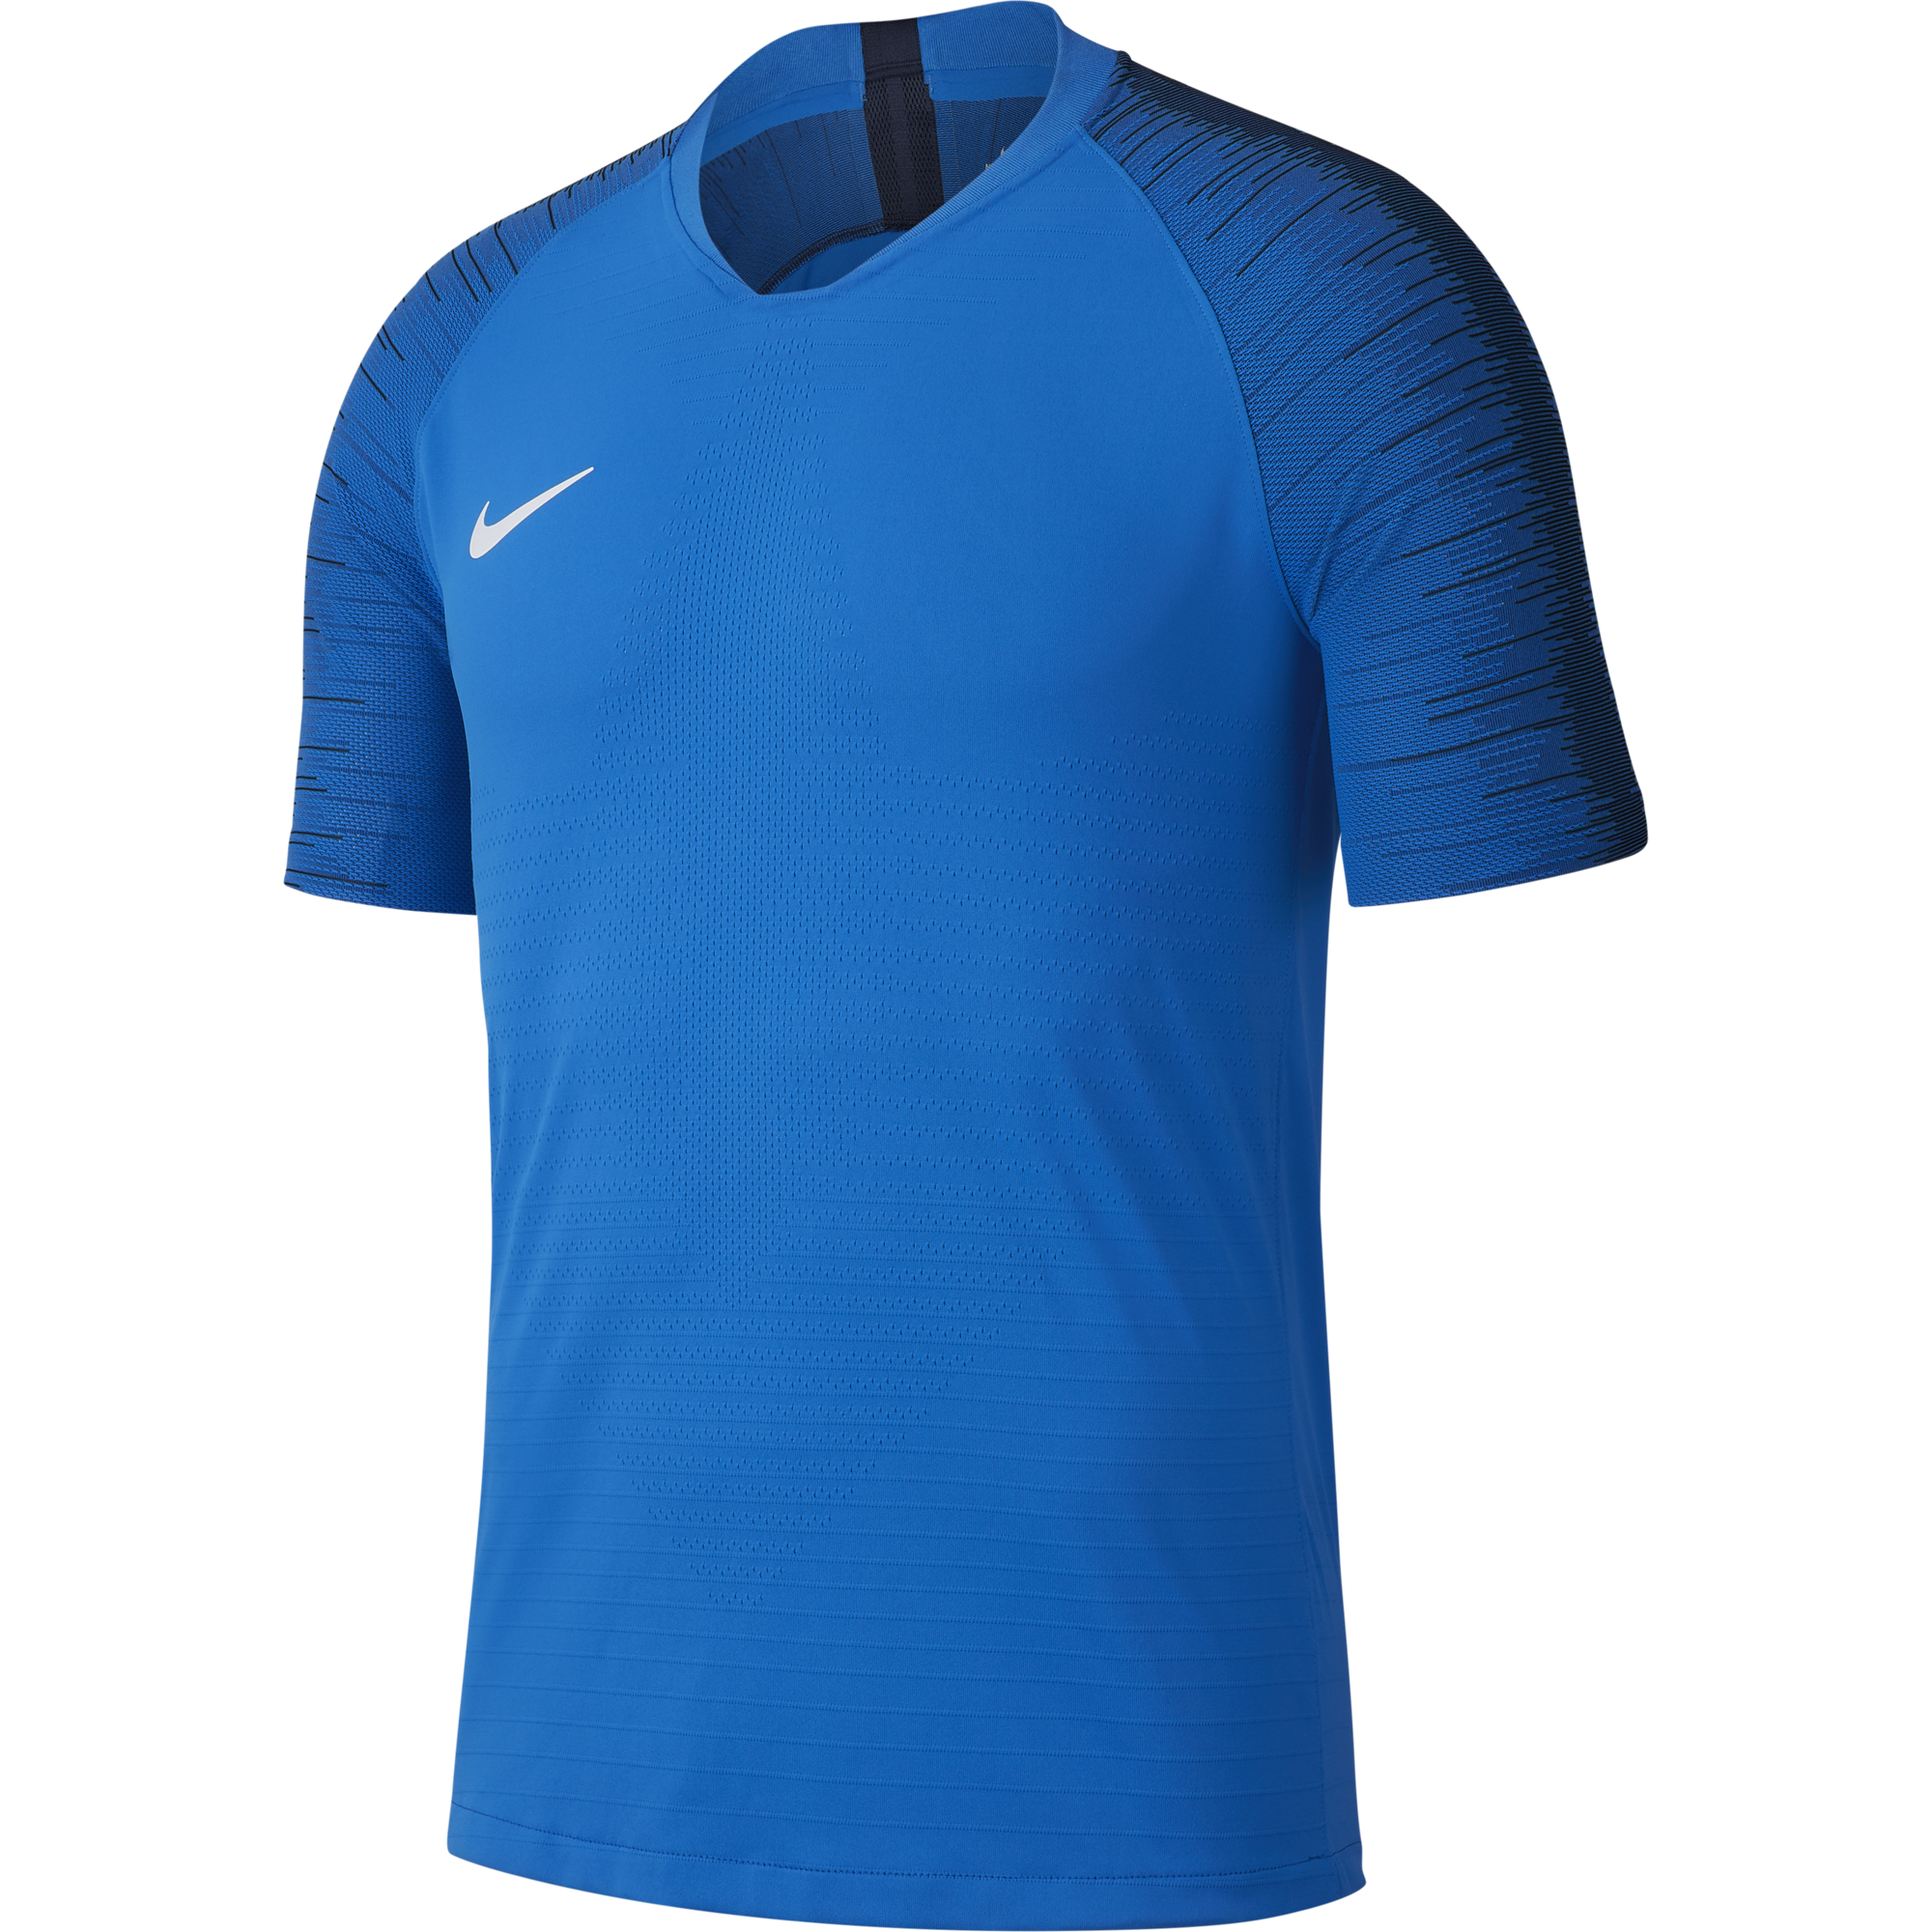 Nike Vapor knit jersey (royal)